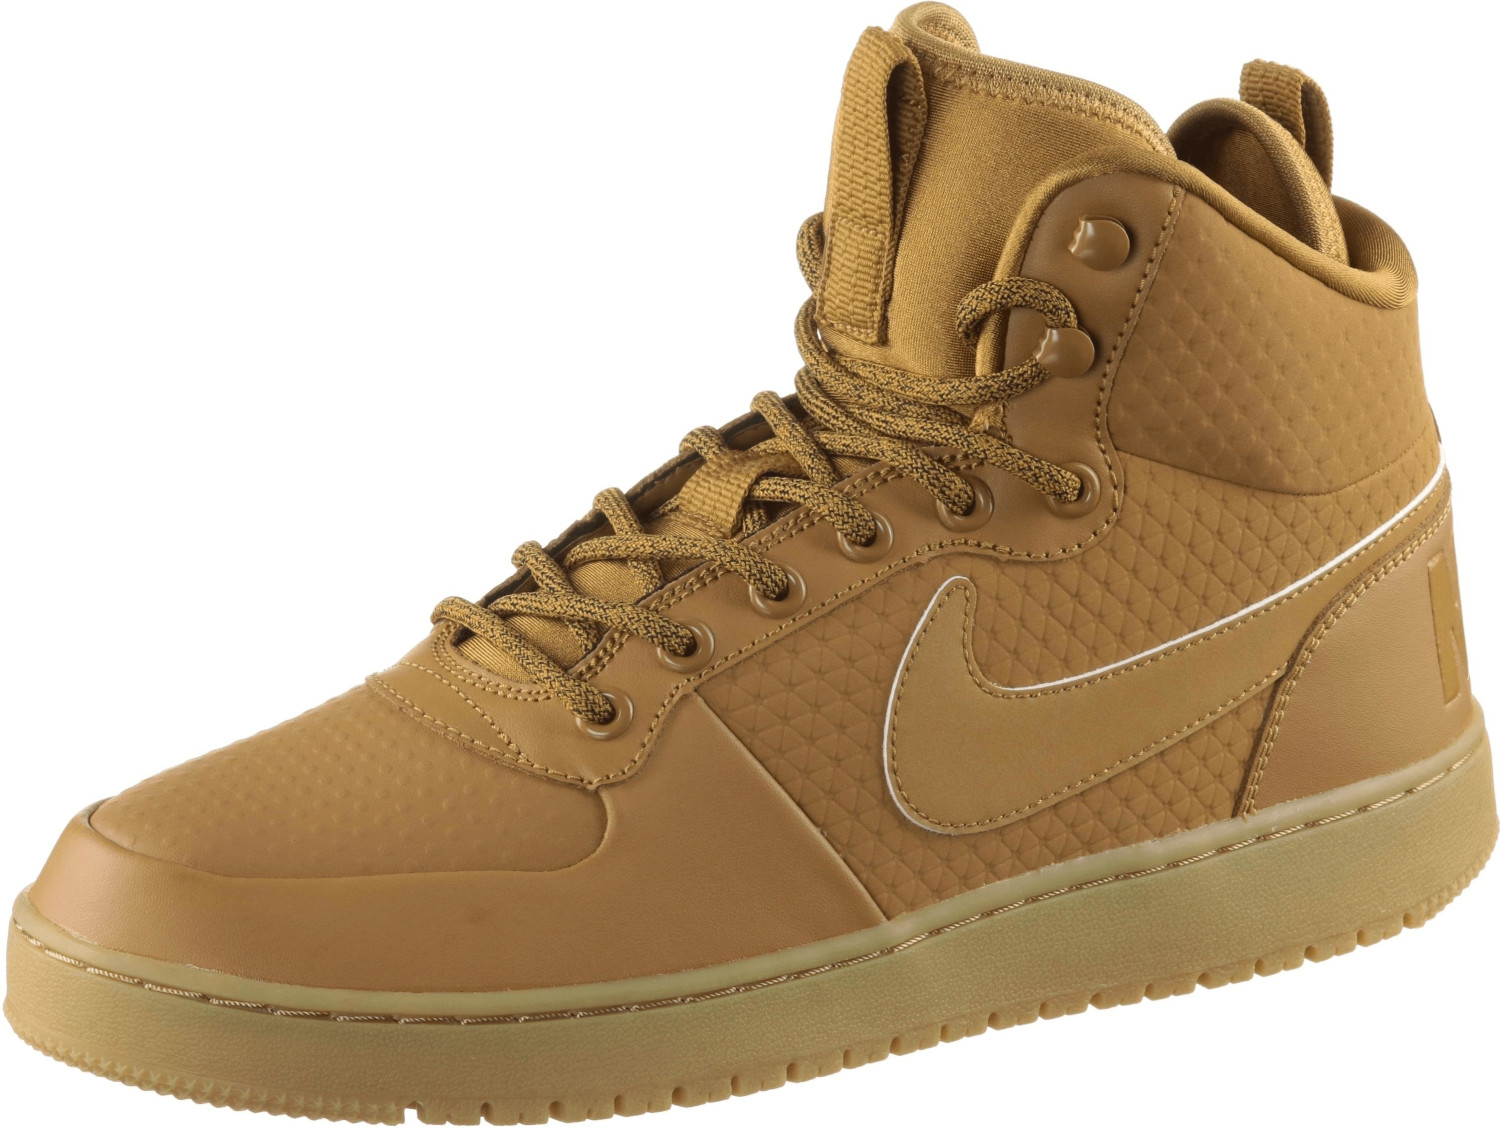 Nike Court Borough Mid Winter wheat/wheat/black/gum light brown